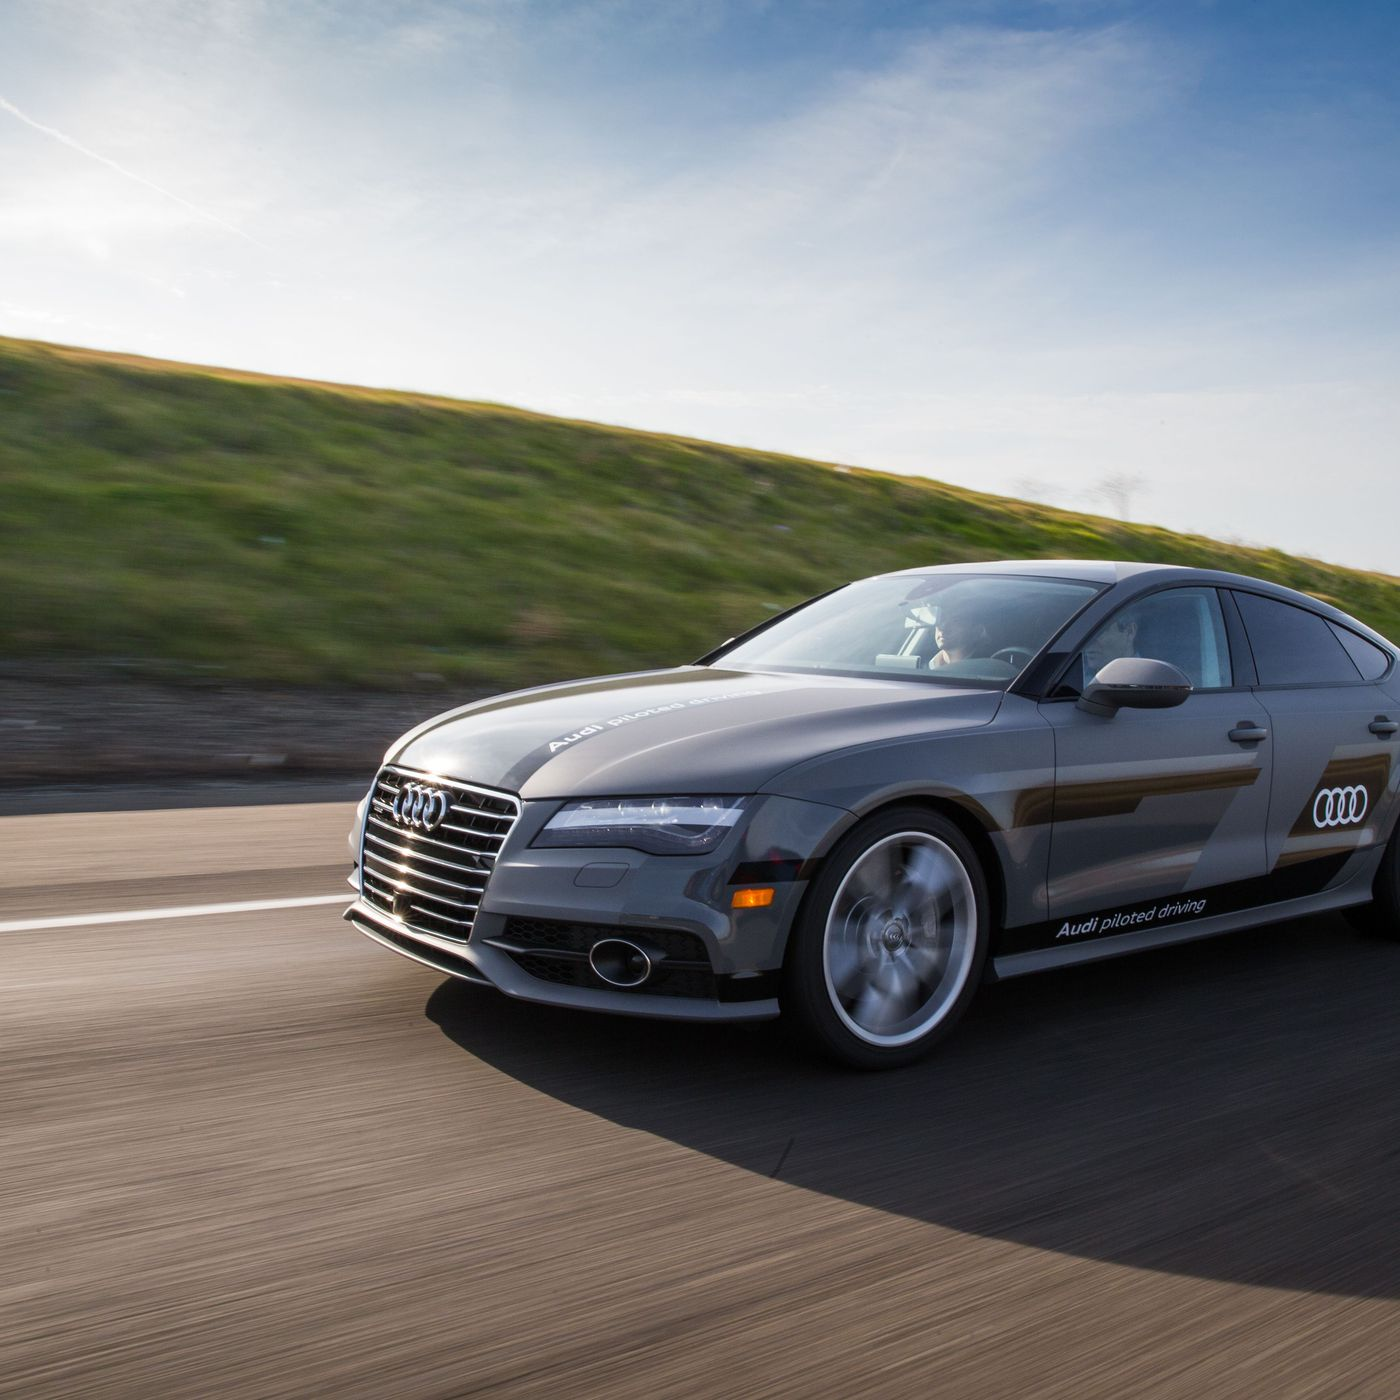 Audi s A7 Sportback is driving itself more than 550 miles to CES